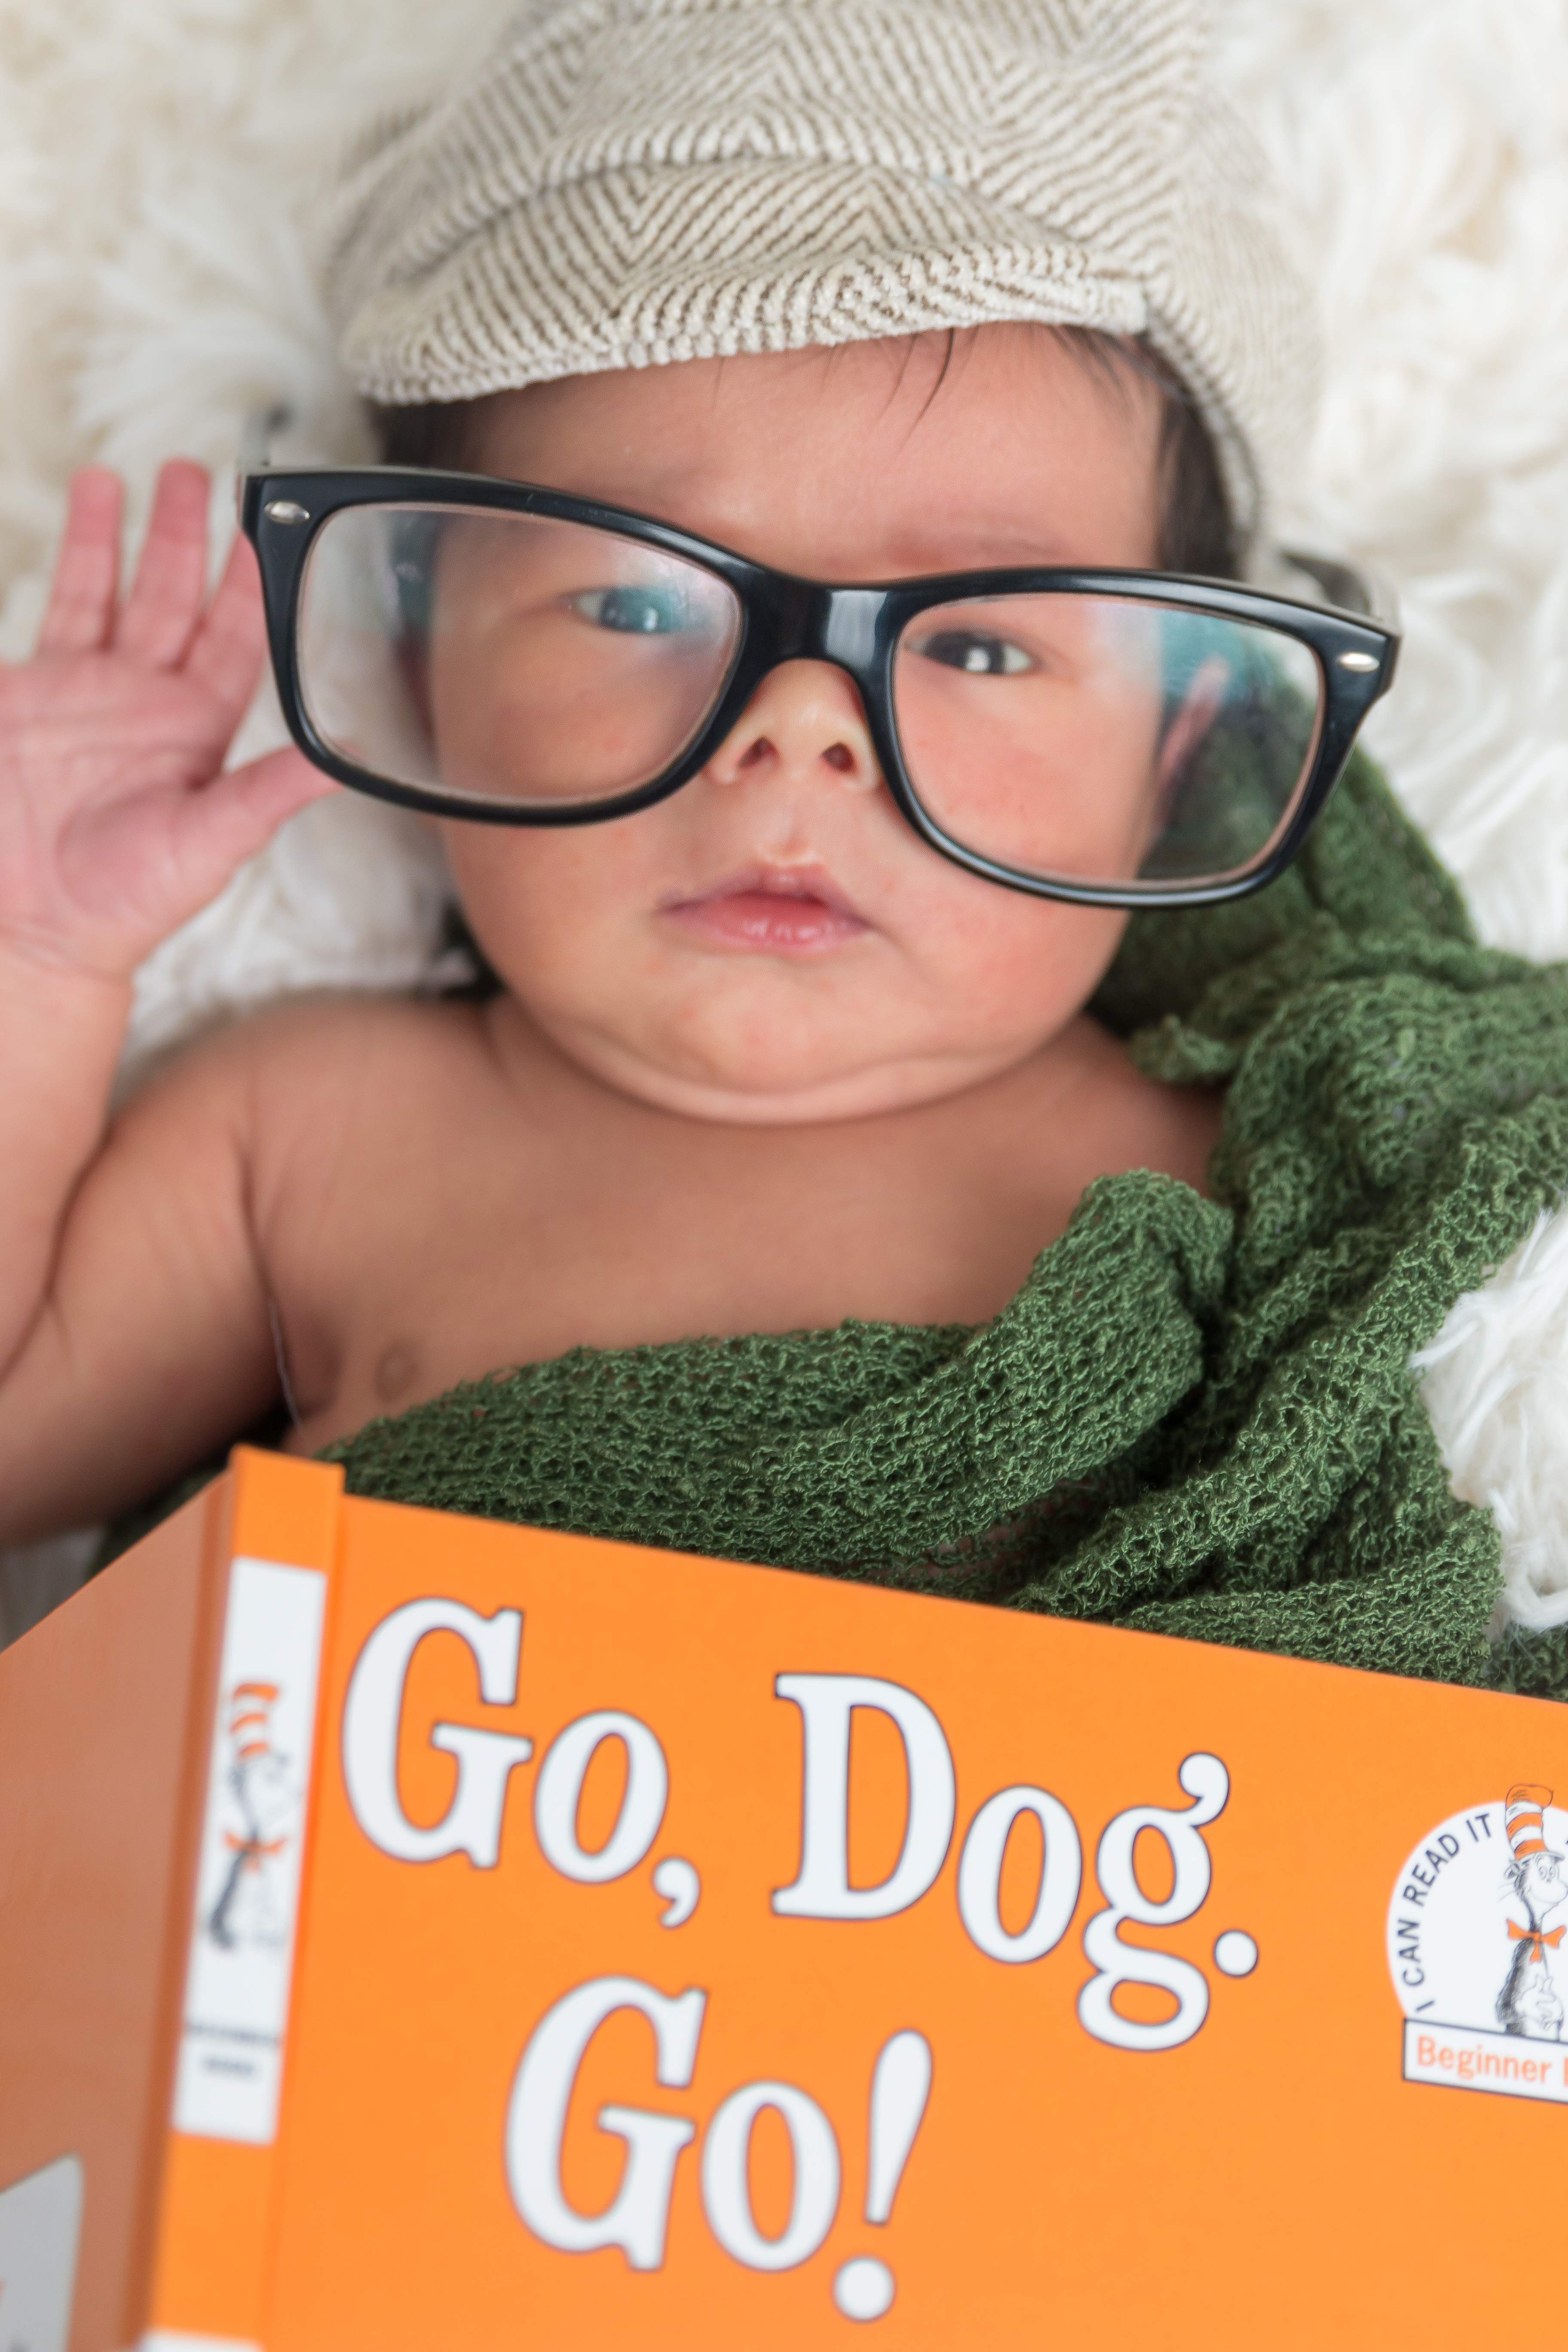 Tallahassee newborn photographer Catalytic Camera Baby with a book and glasses